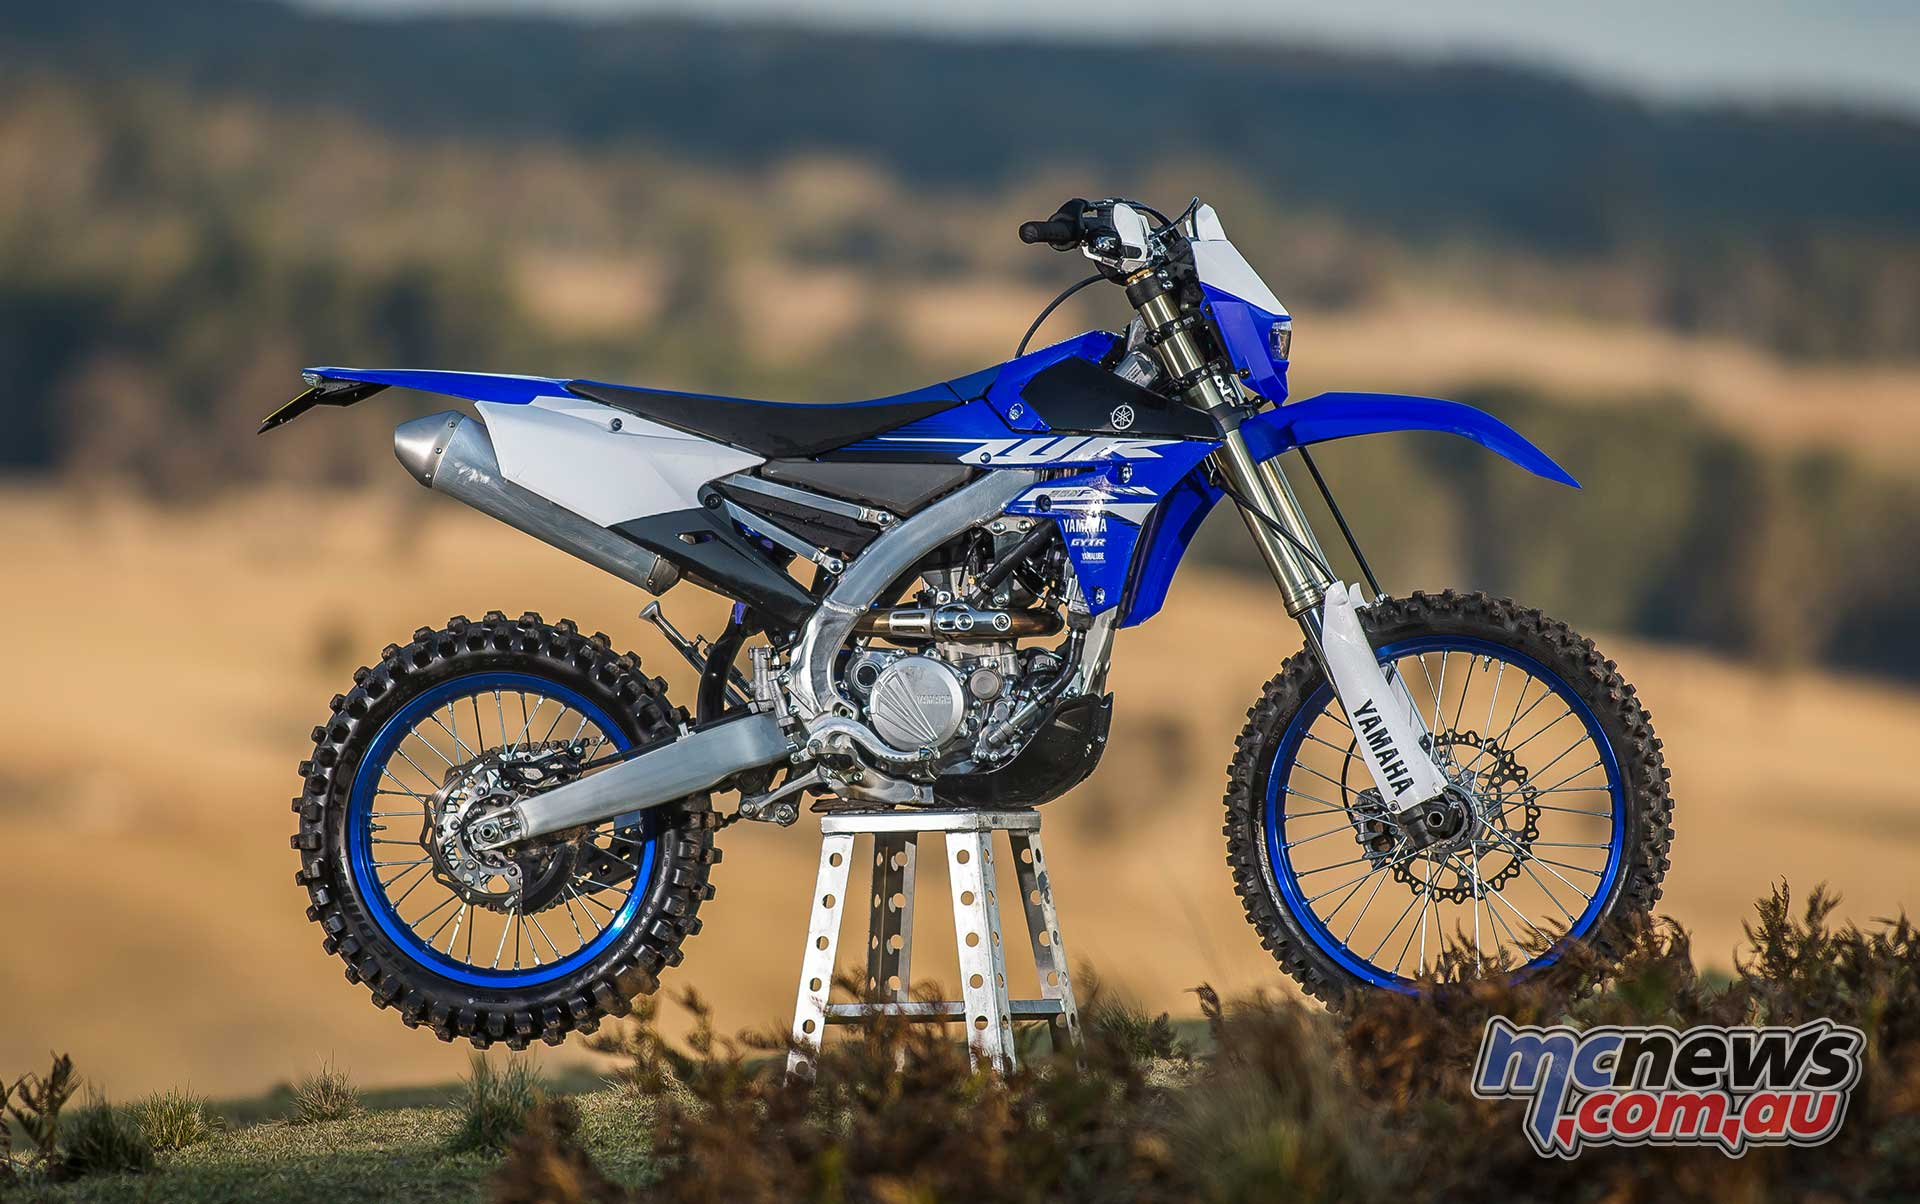 2018 Yamaha WR250F Review | Motorcycle Test | MCNews com au